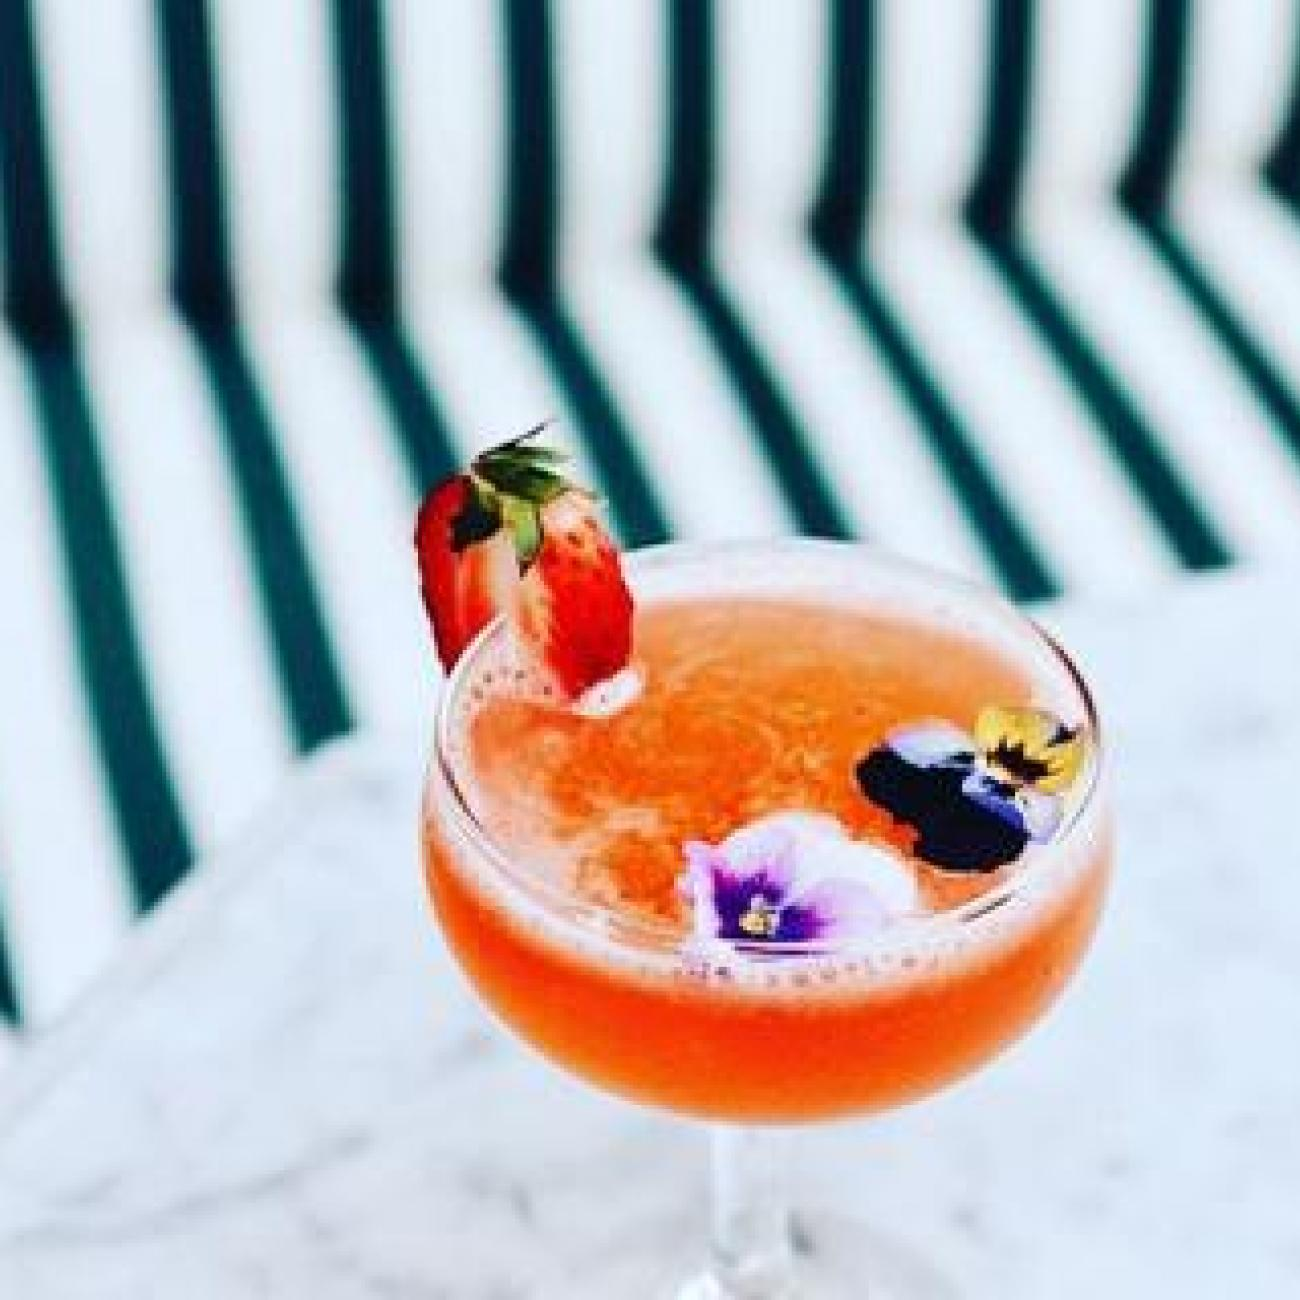 A frothy orange cocktail garnished with strawberry and flowers